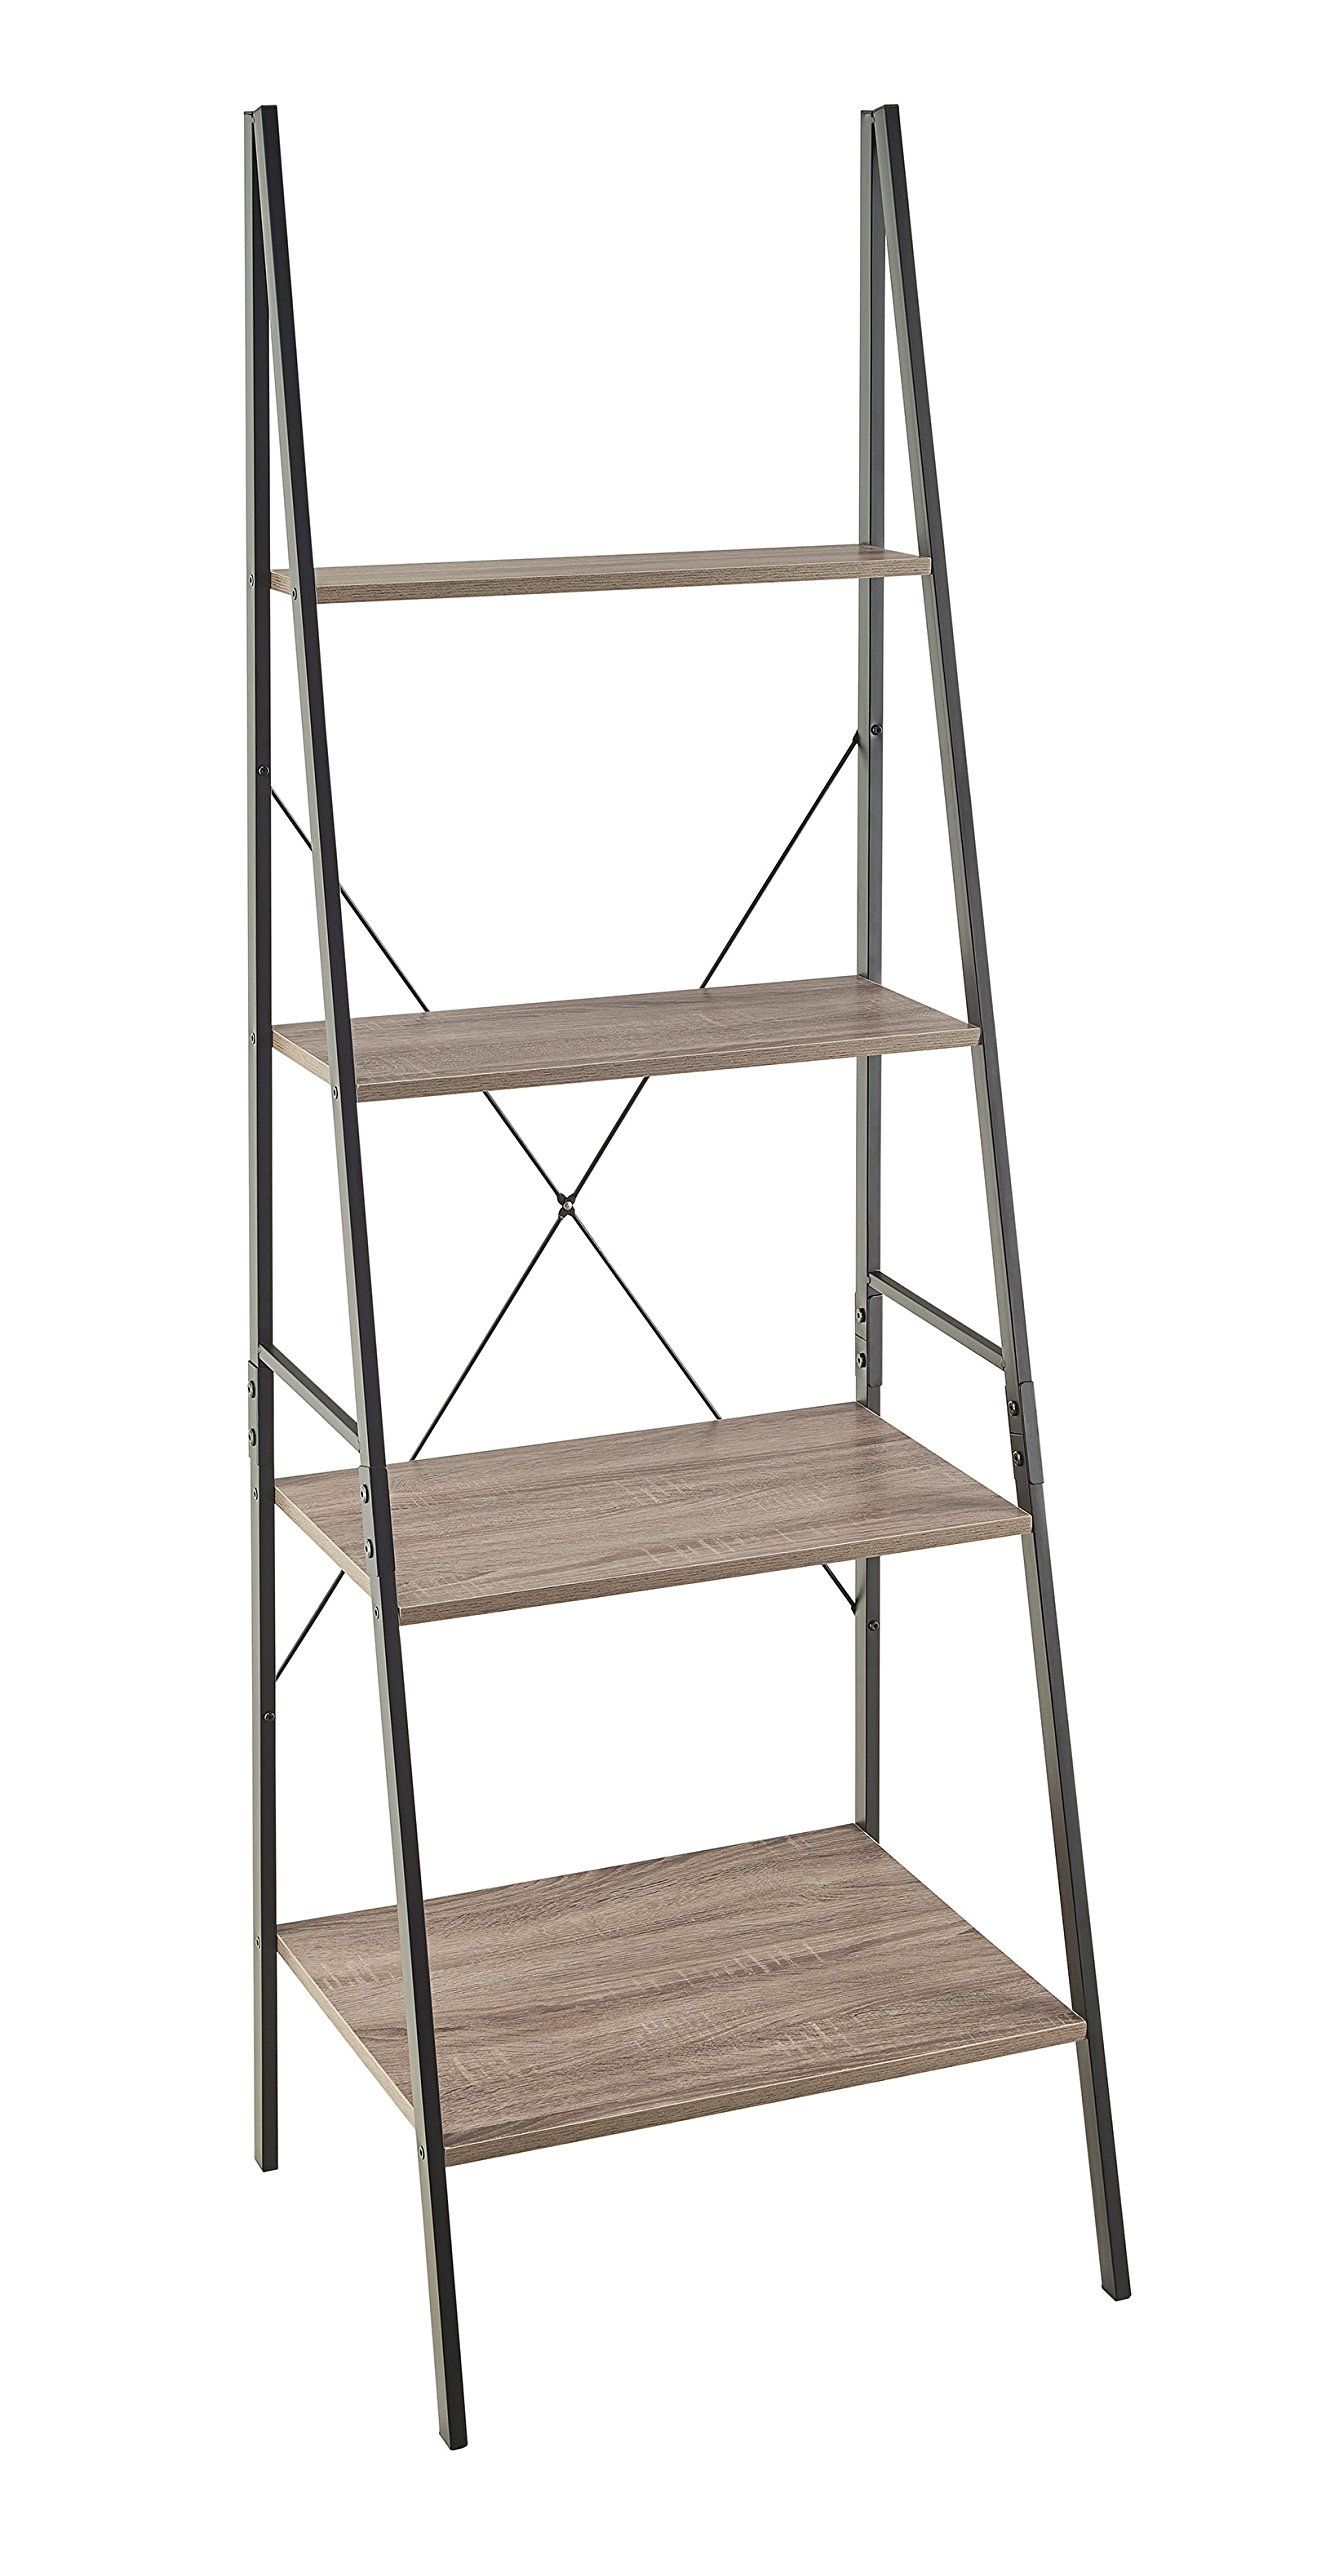 ClosetMaid 1316 4-Tier Wood Ladder Shelf Bookcase, Gray by ClosetMaid